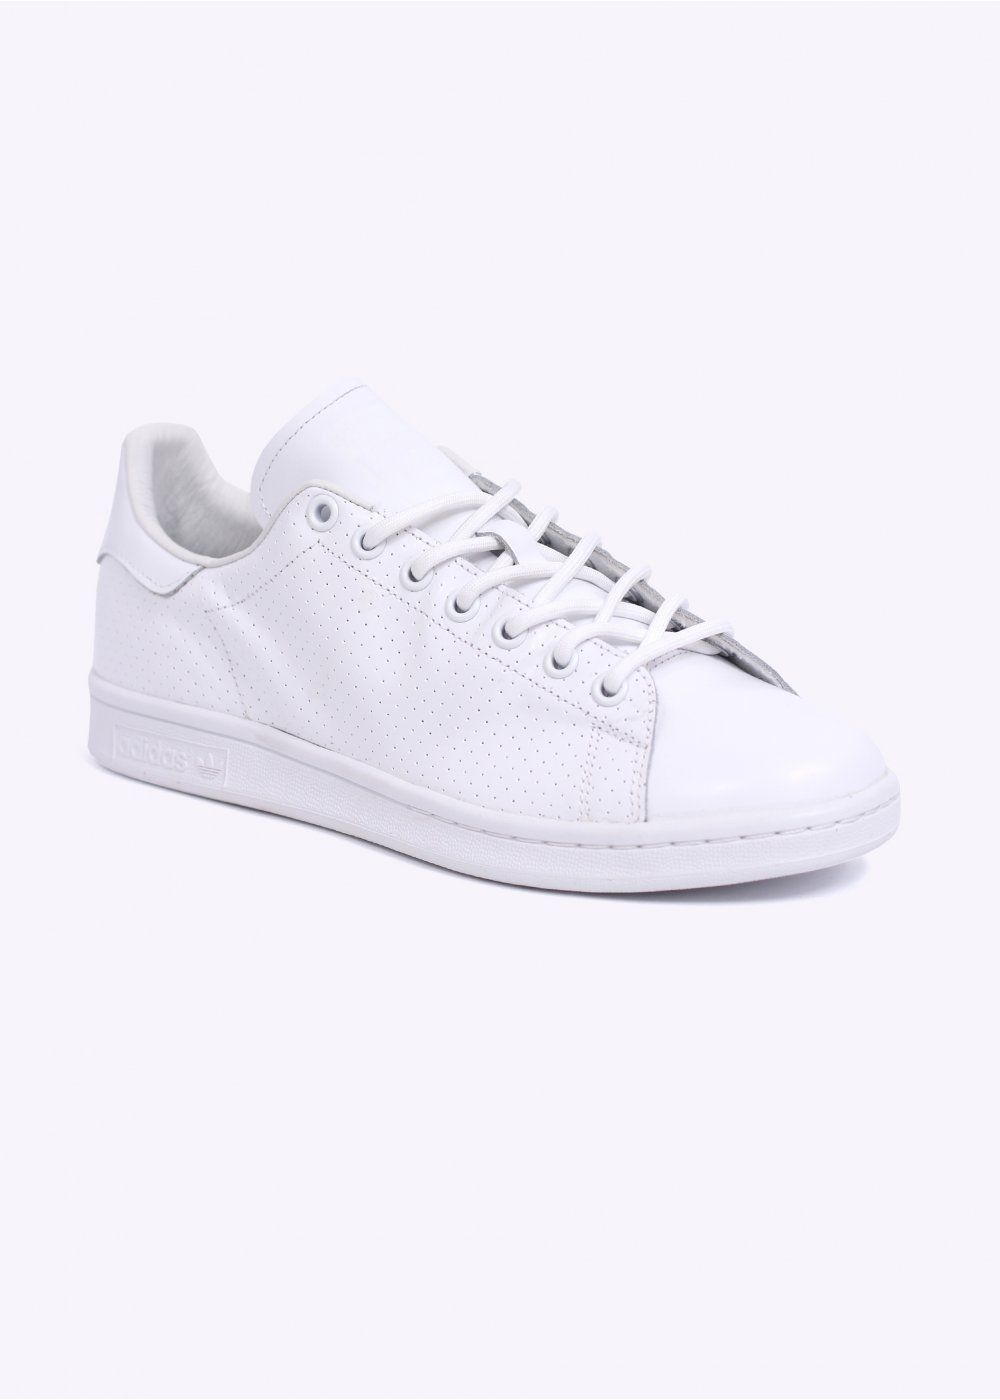 Adidas Originals Footwear Stan Smith Trainers - All White